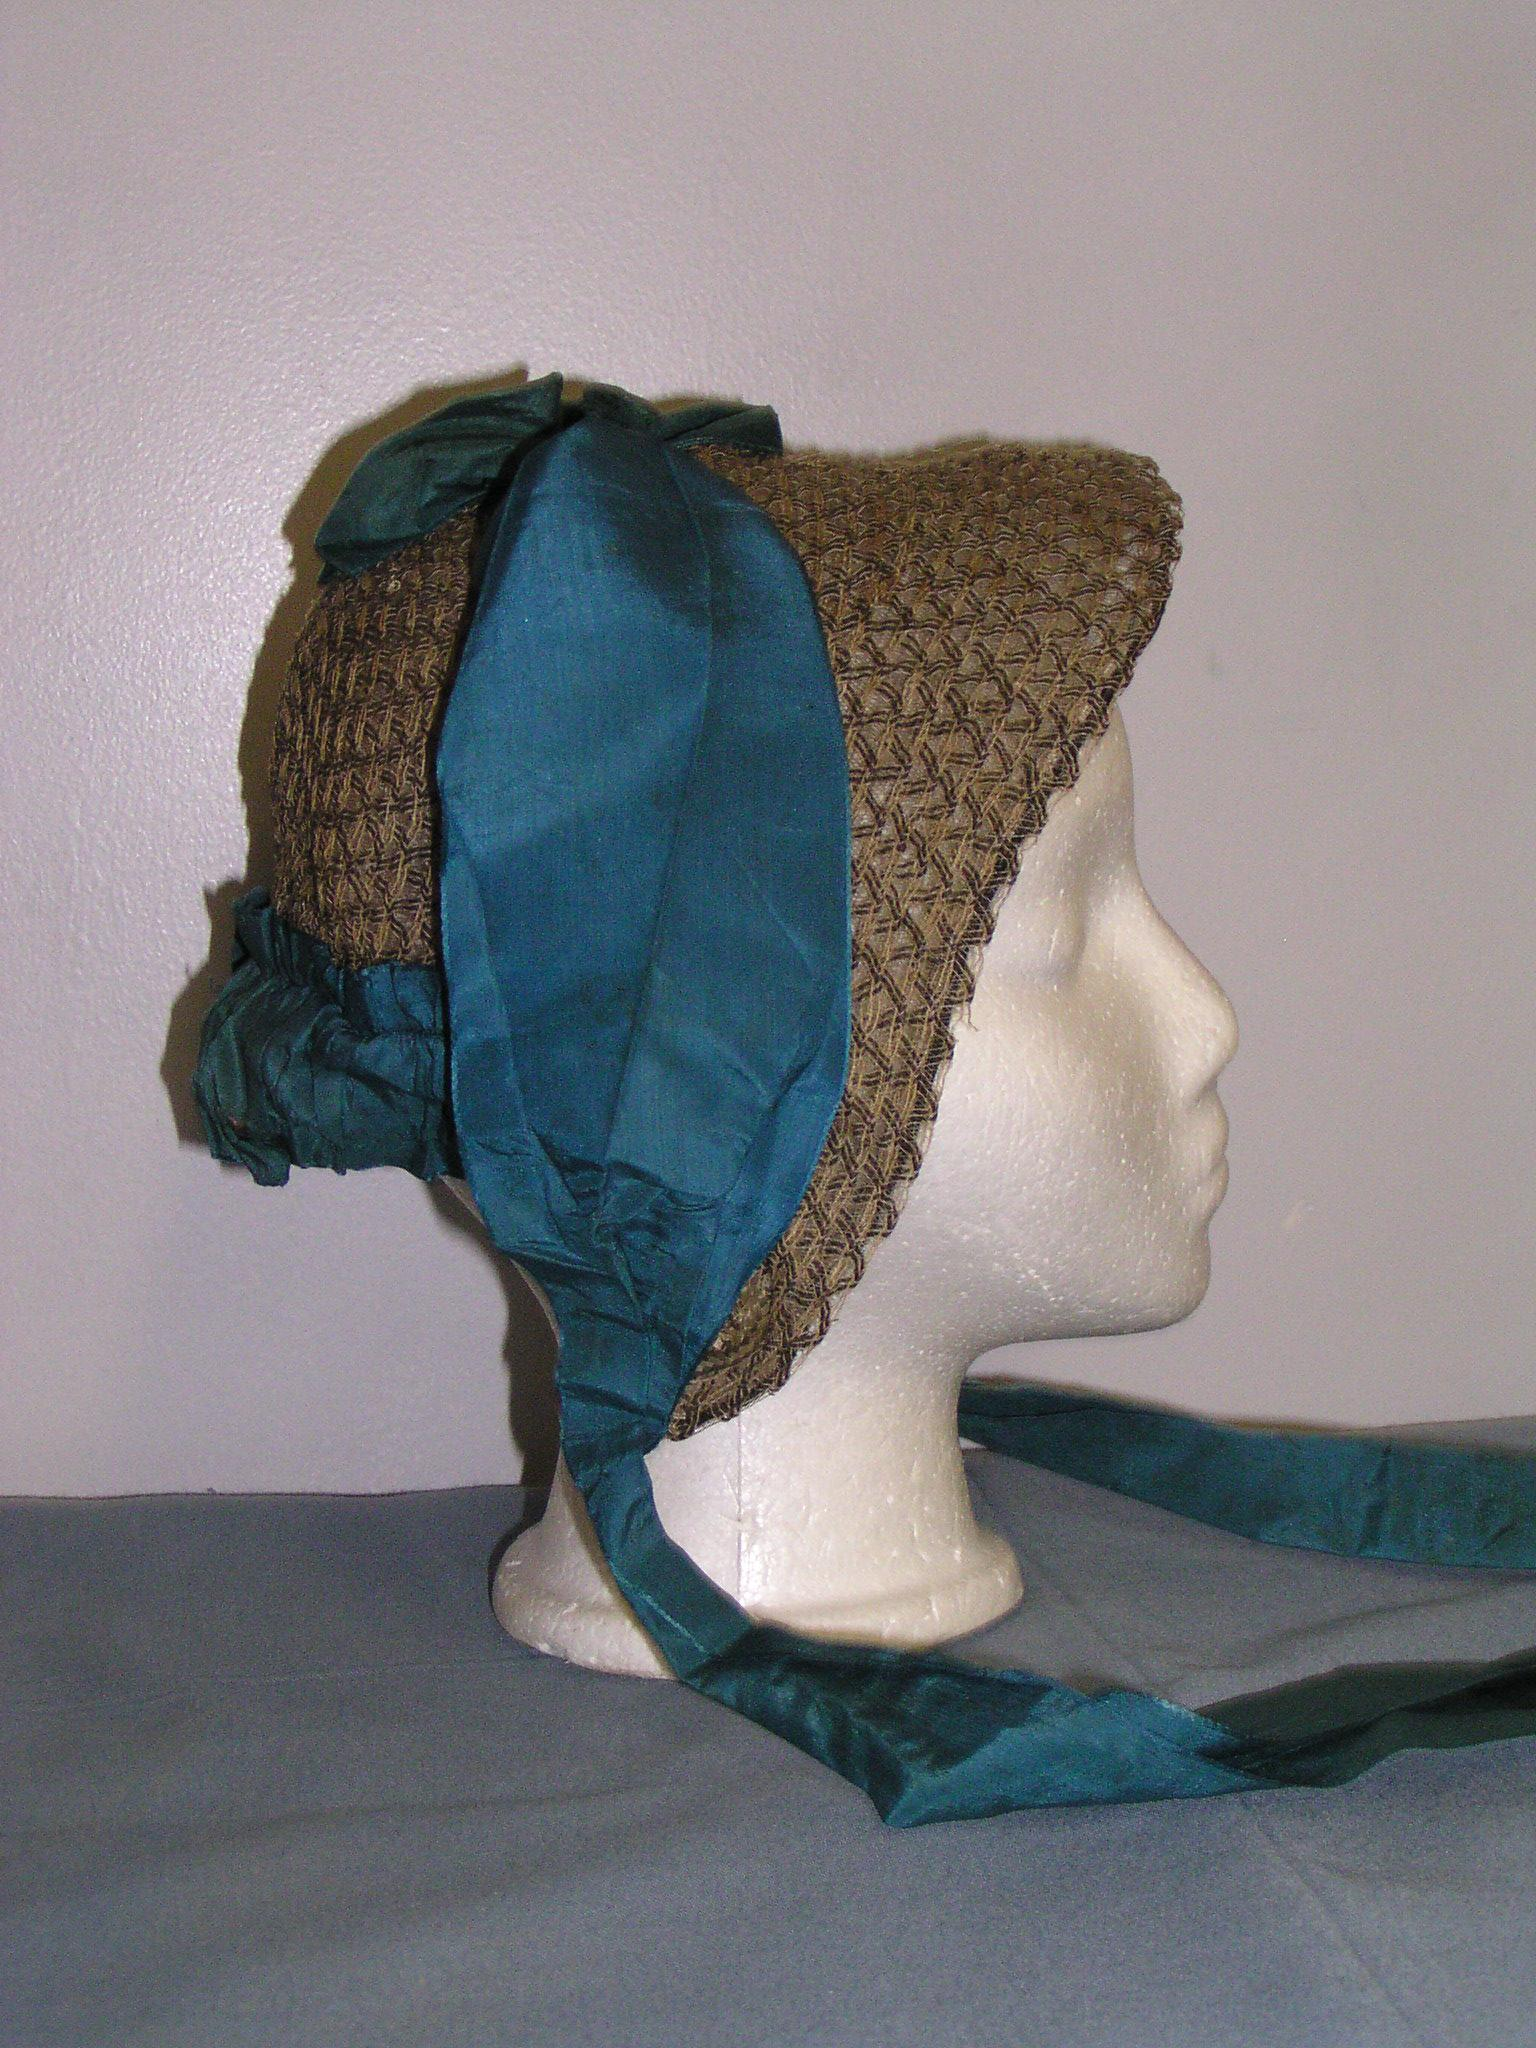 Laura Secord's straw bonnet with a long and thick blue ribbon around the crest of the bill to the back of the hat and ties extending past the bonnet with which the bonnet is tied in highwinds. It is placed on a white mannequin head with a grey background and grey table. The weaving of the hat is intricate forming chevorns pointing toward the face.